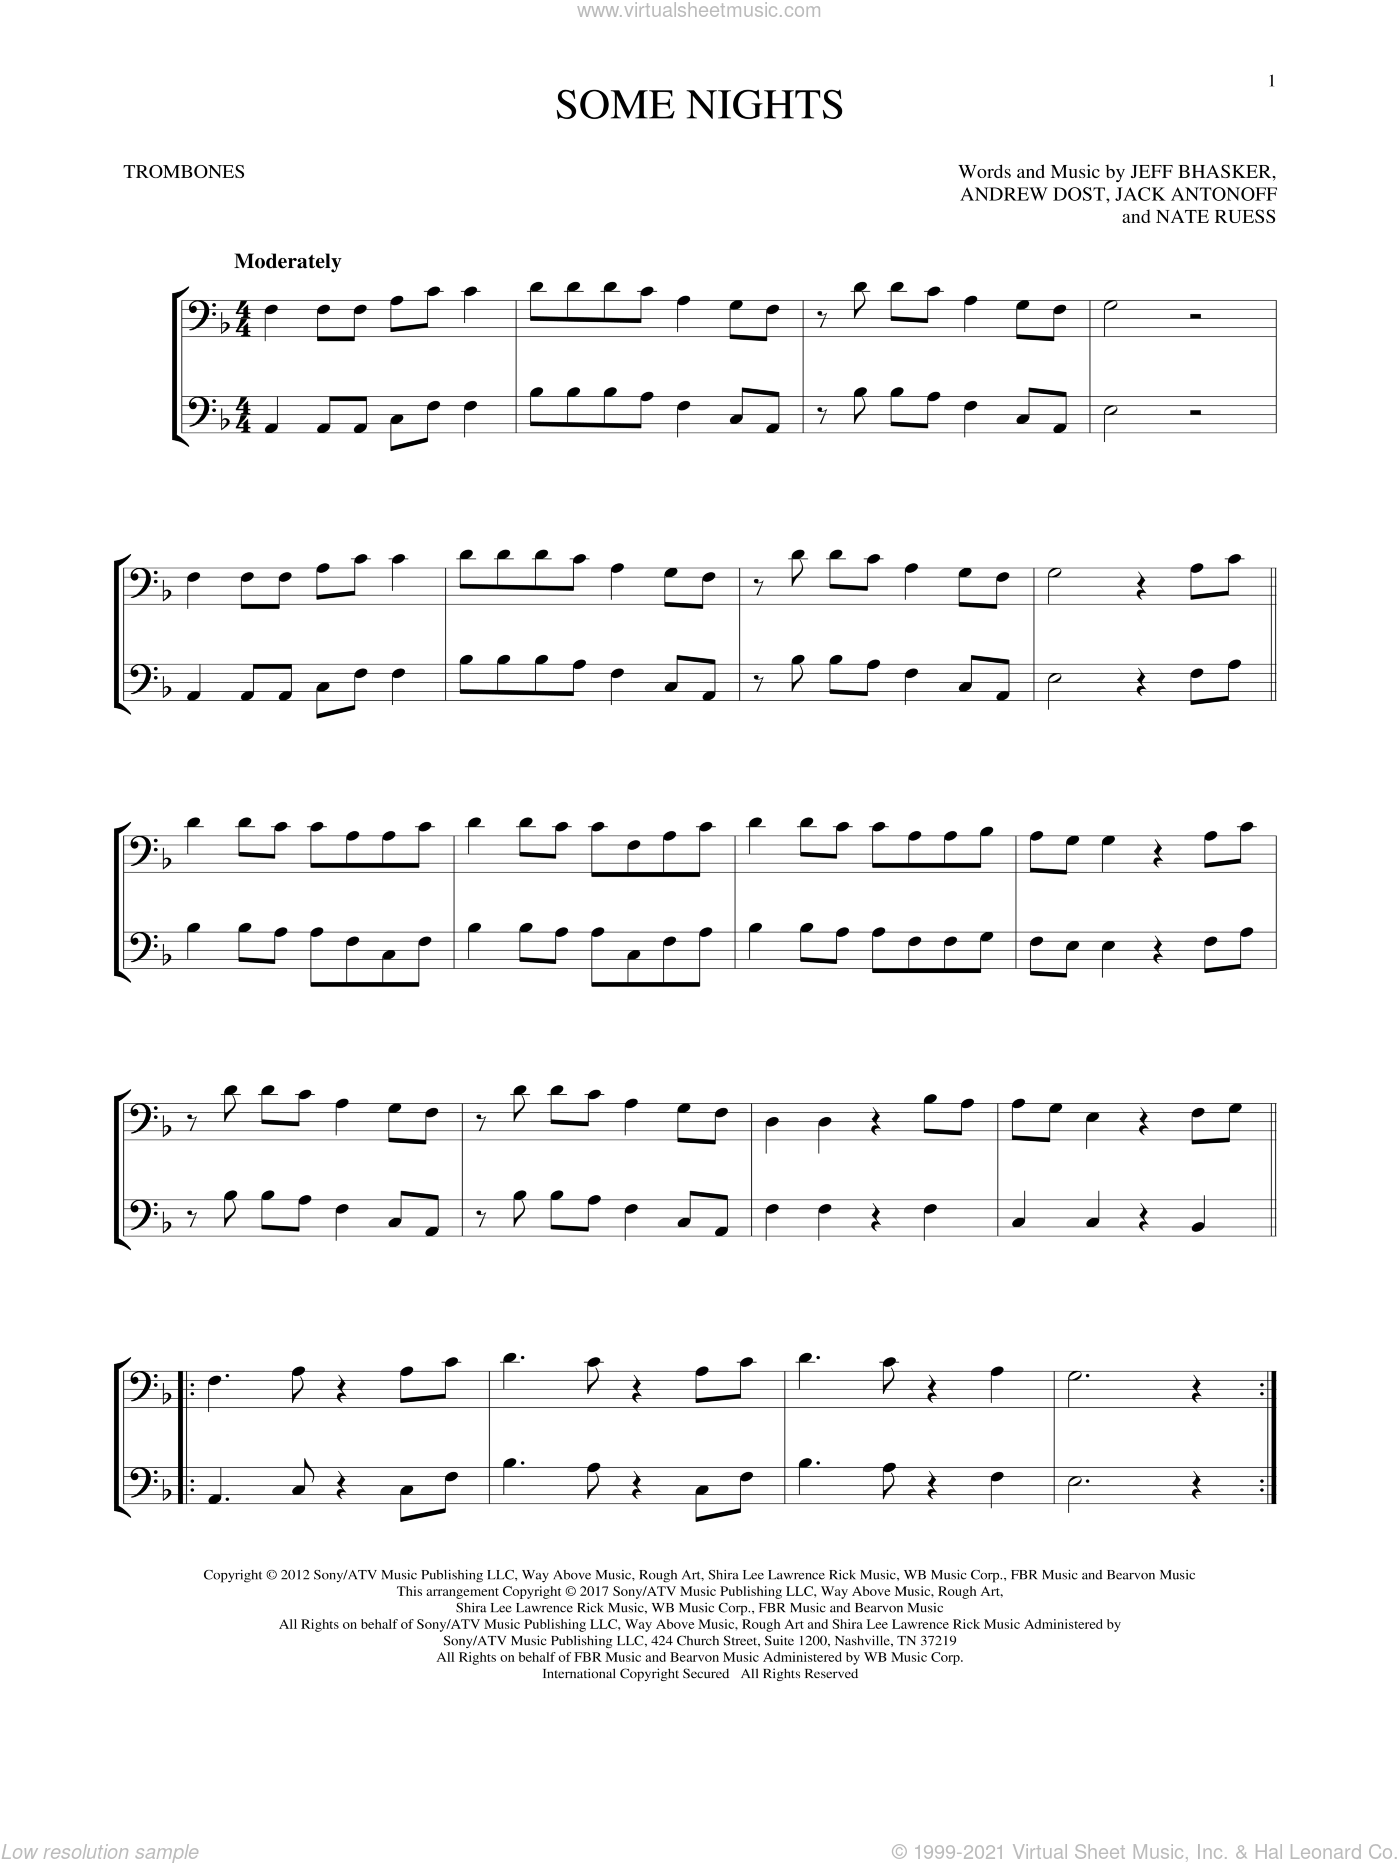 Some Nights sheet music for two trombones (duet, duets) by Fun, Andrew Dost, Jack Antonoff, Jeff Bhasker and Nate Ruess, intermediate skill level